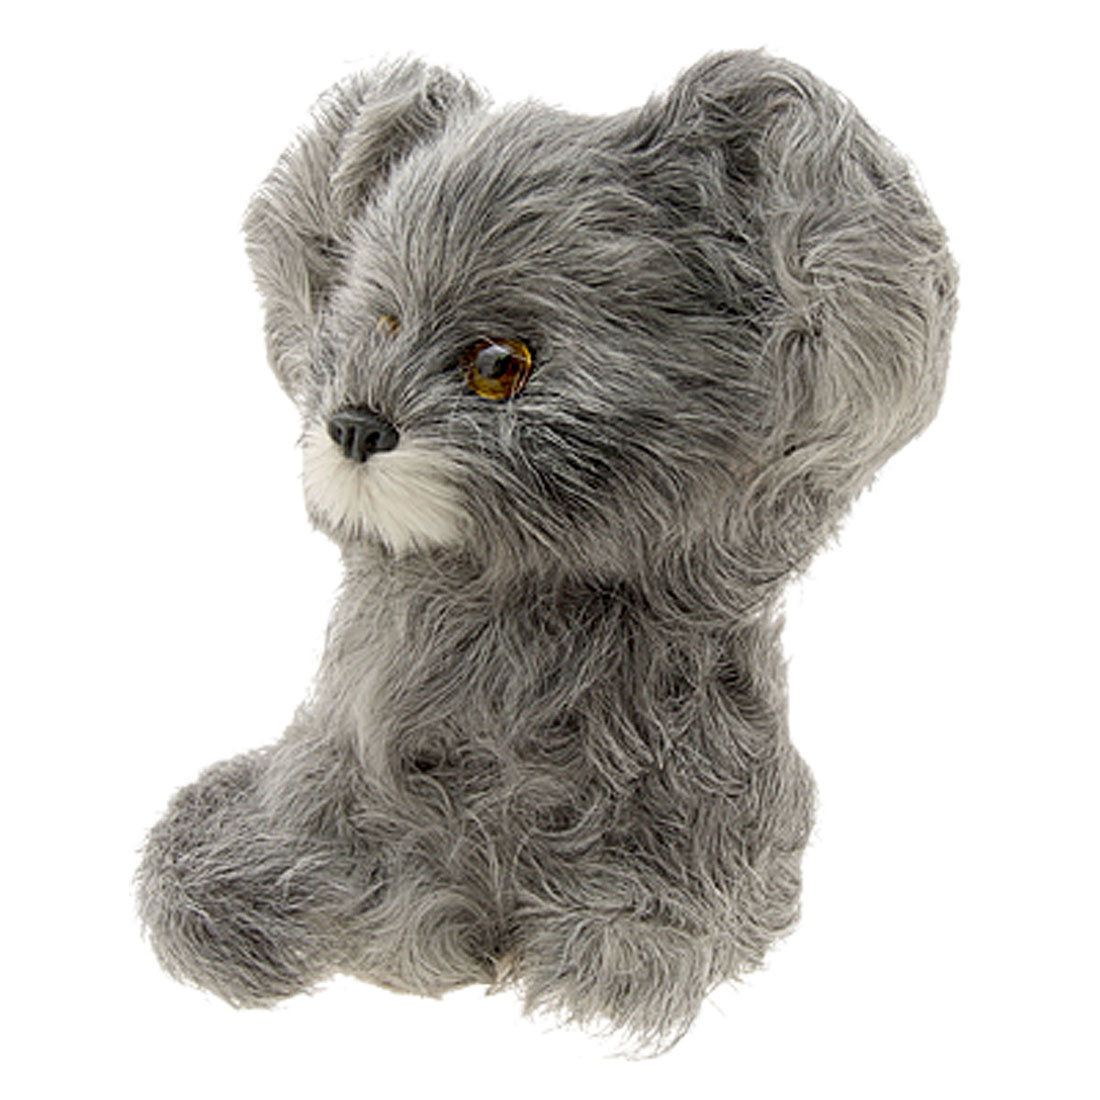 Grey Baby Dog Gifts Decoration Ornament Stuffed Toy